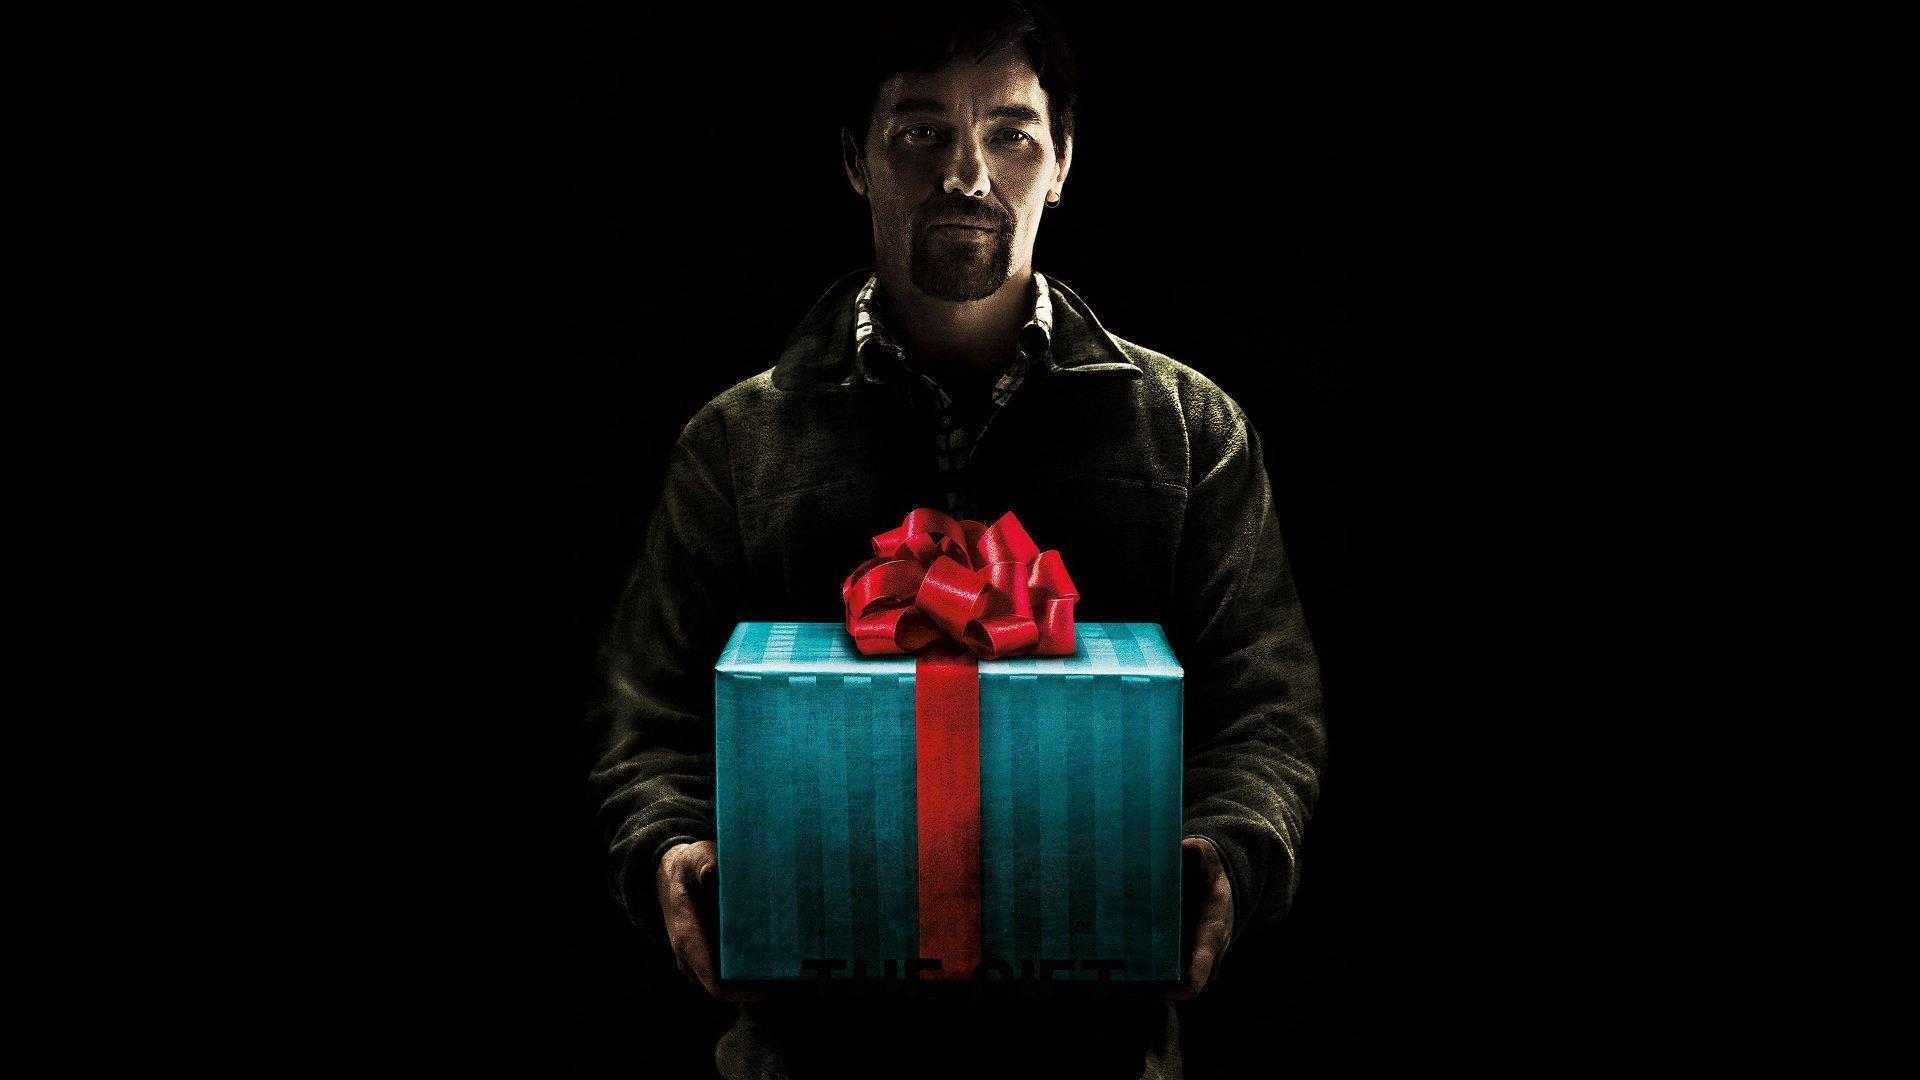 The Gift 2015 Hd Wallpaper Background Image